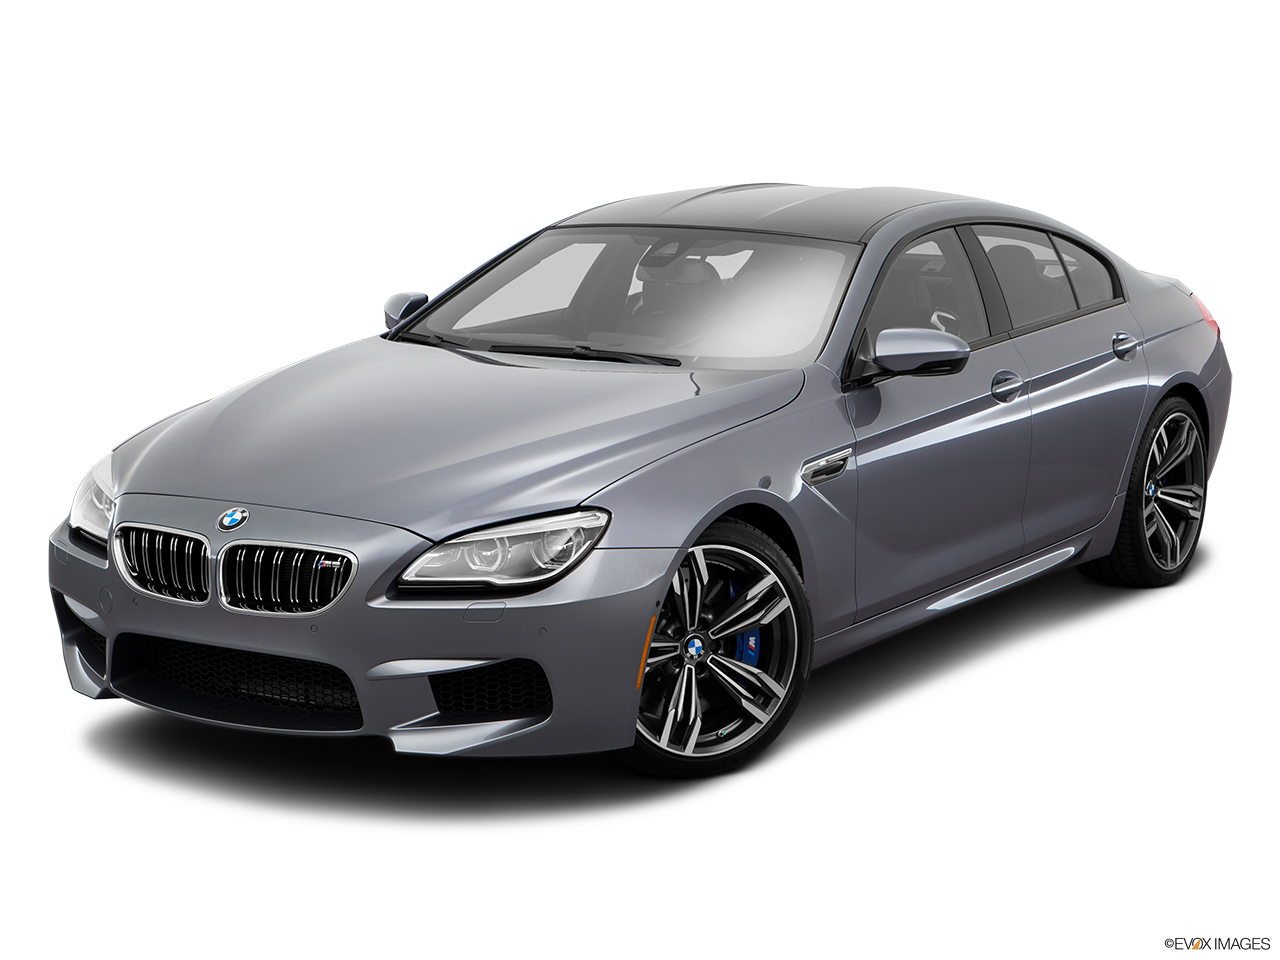 Car Features List For Bmw M6 Gran Coupe 2017 4 4t Oman